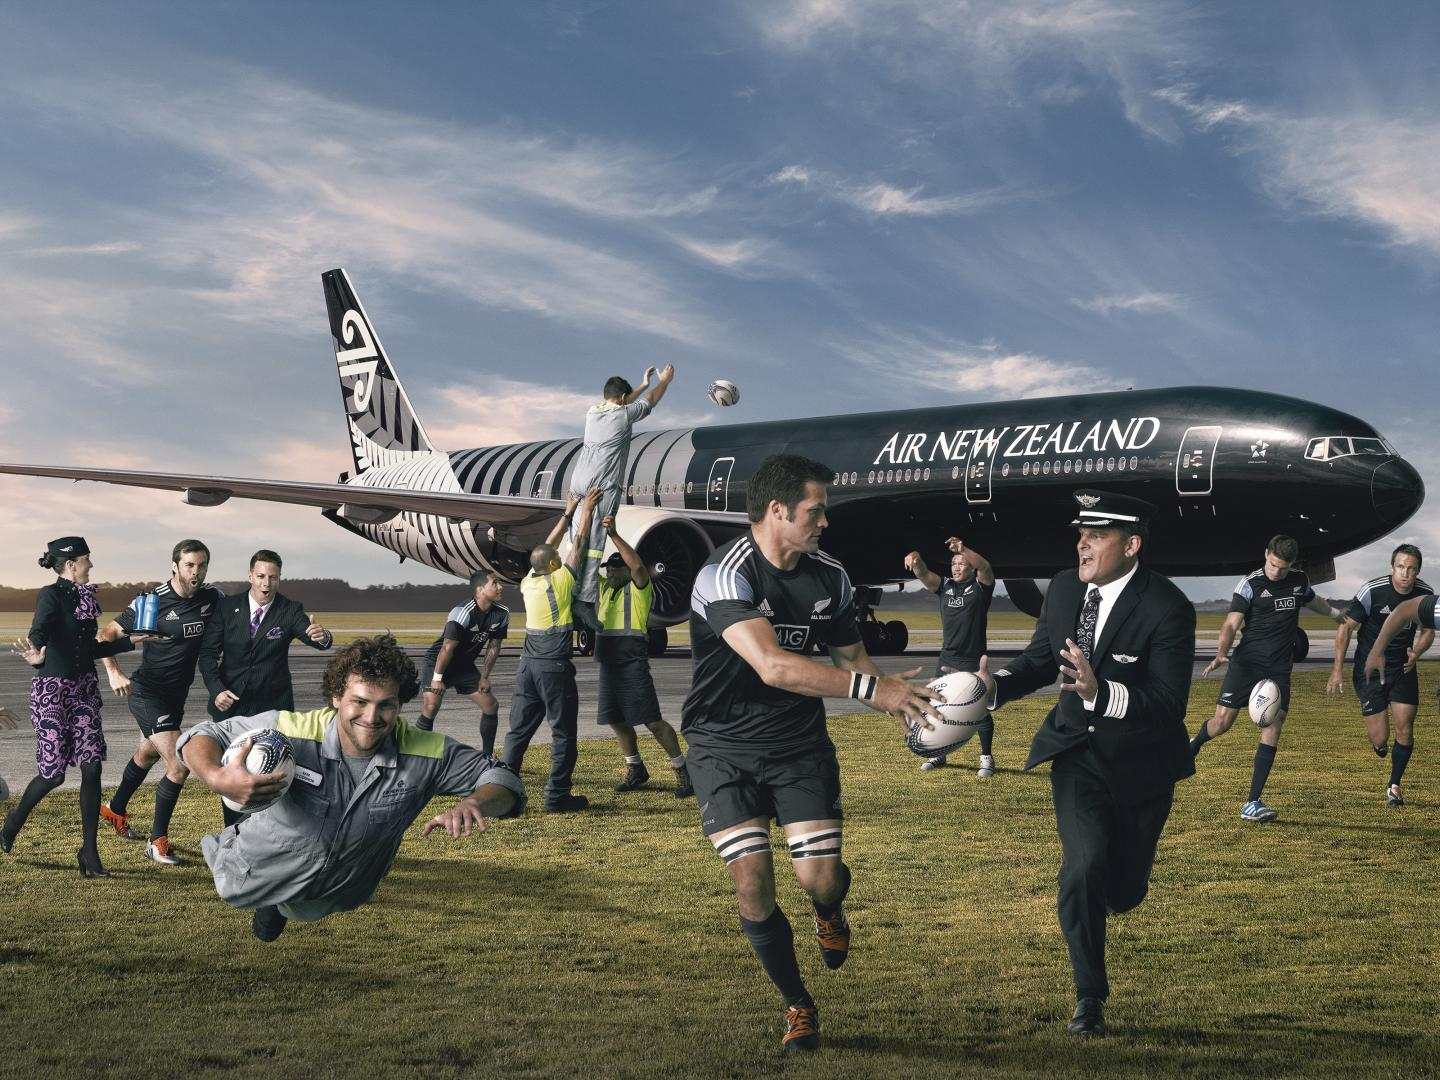 Crazy About Rugby – Air New Zealand's Sponsorship of the All Blacks Thumbnail